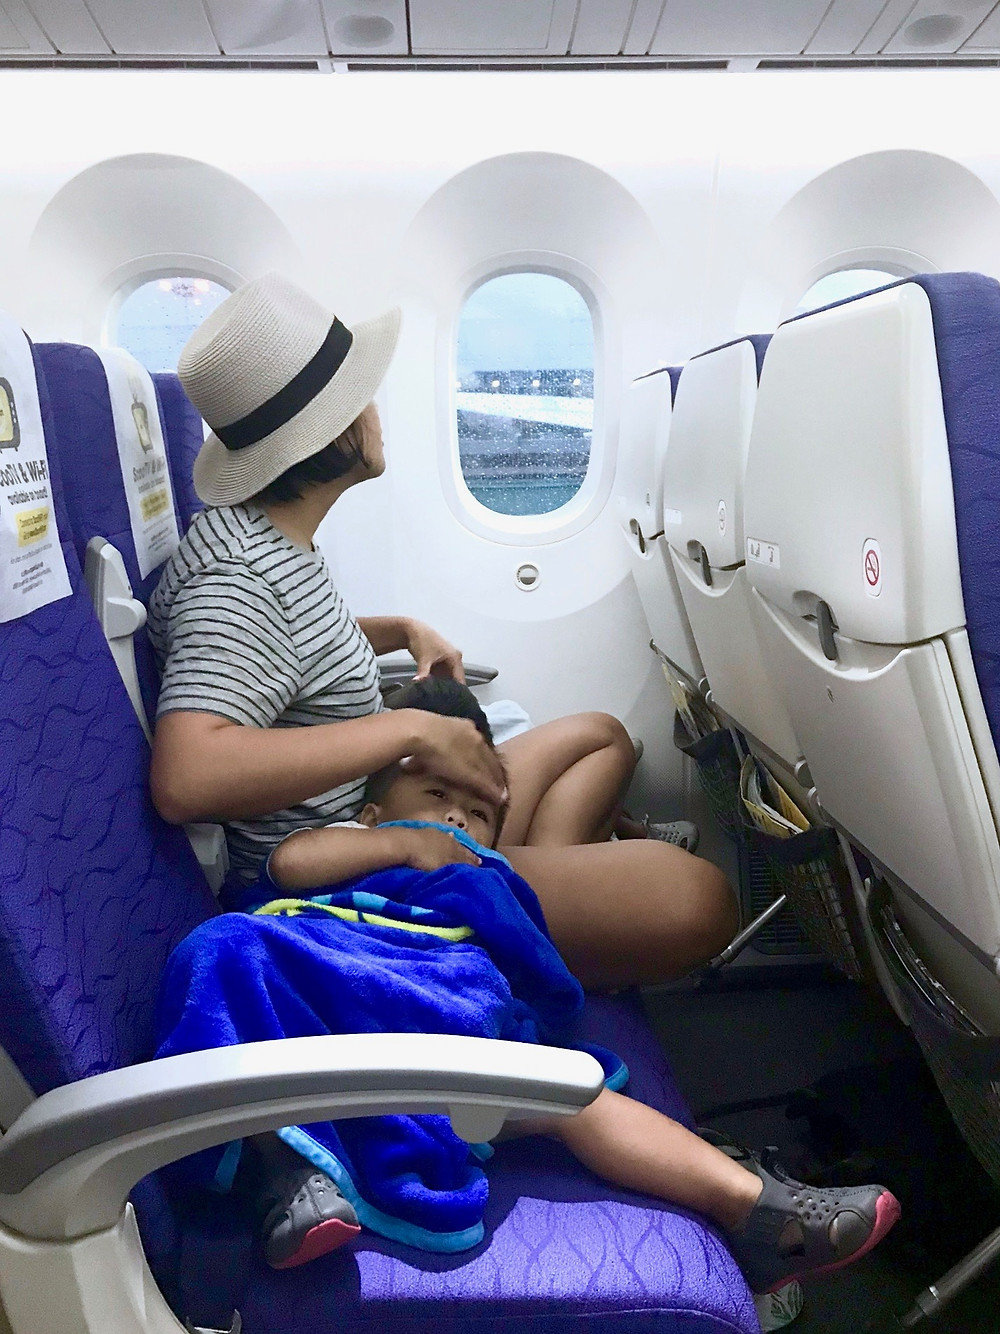 tips for long international flights with young kids // sunnyinjune.com